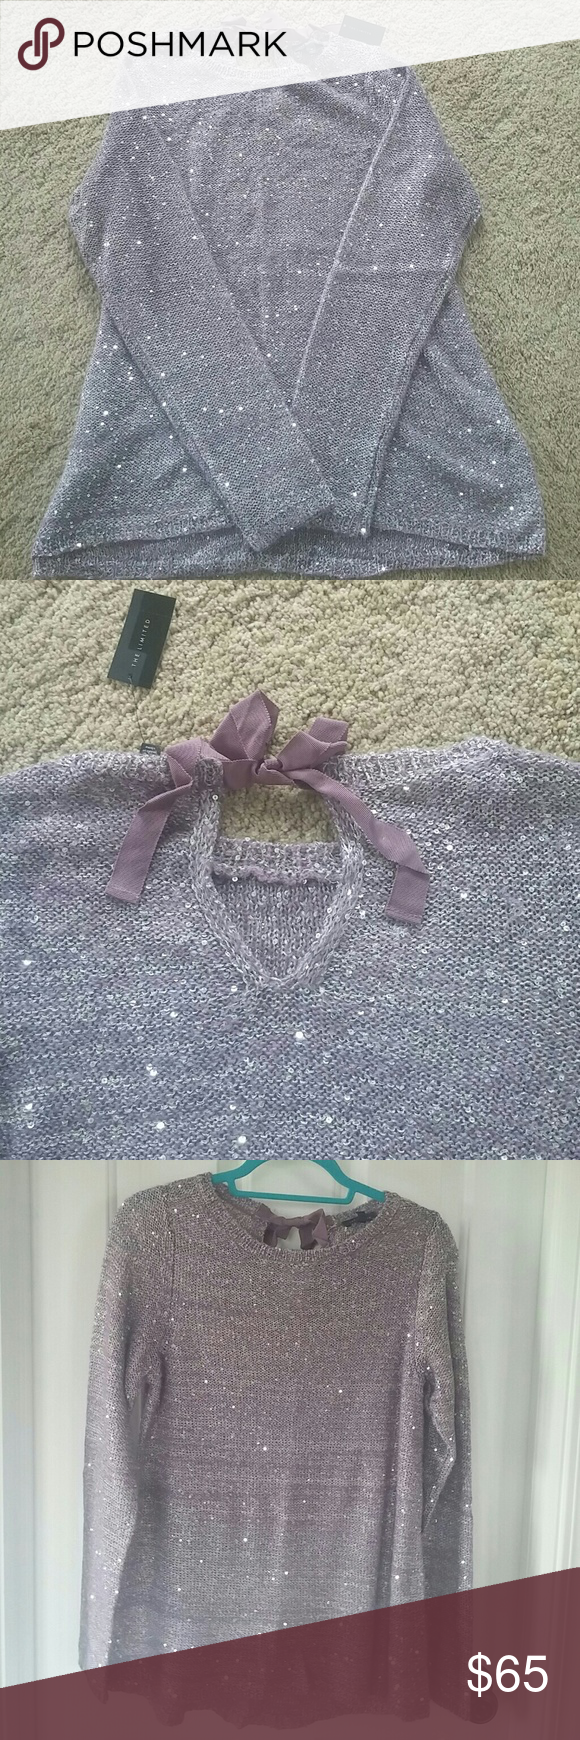 The Limited Purple Sequin sweater